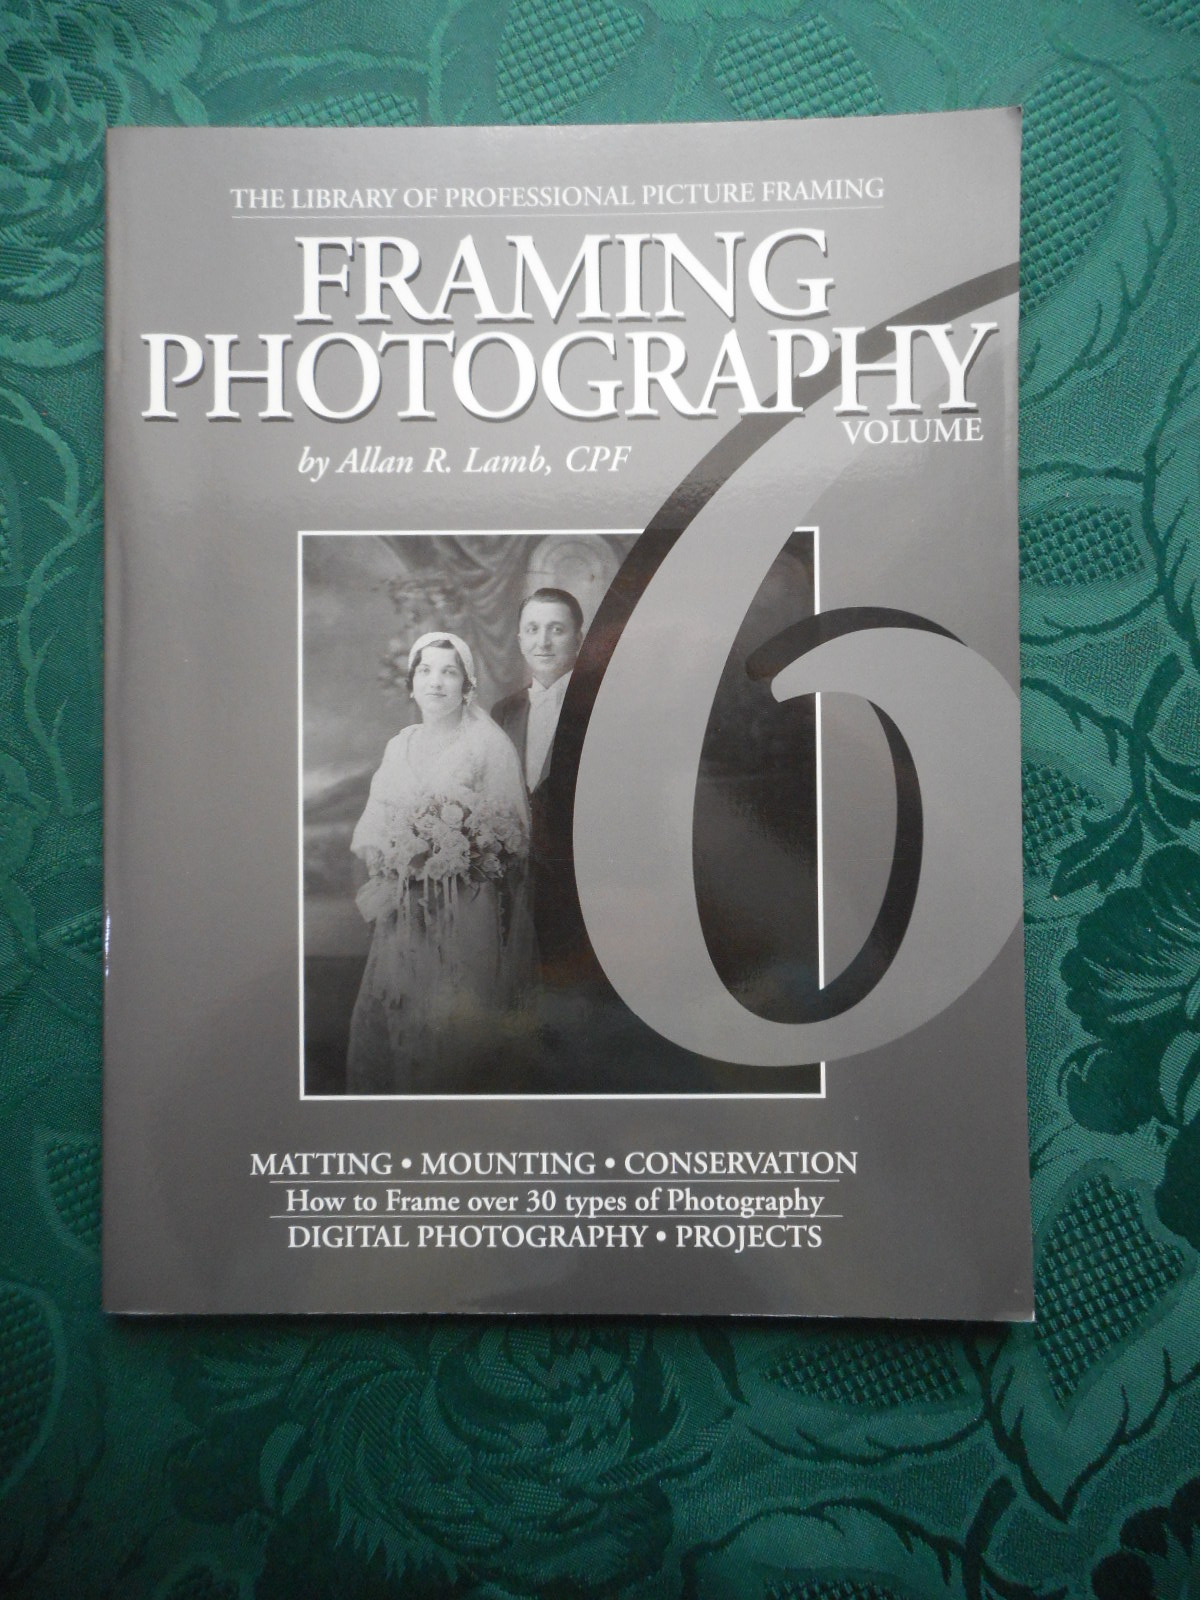 Framing Photography. Volume 6 (Library of Professional Picture Framing)